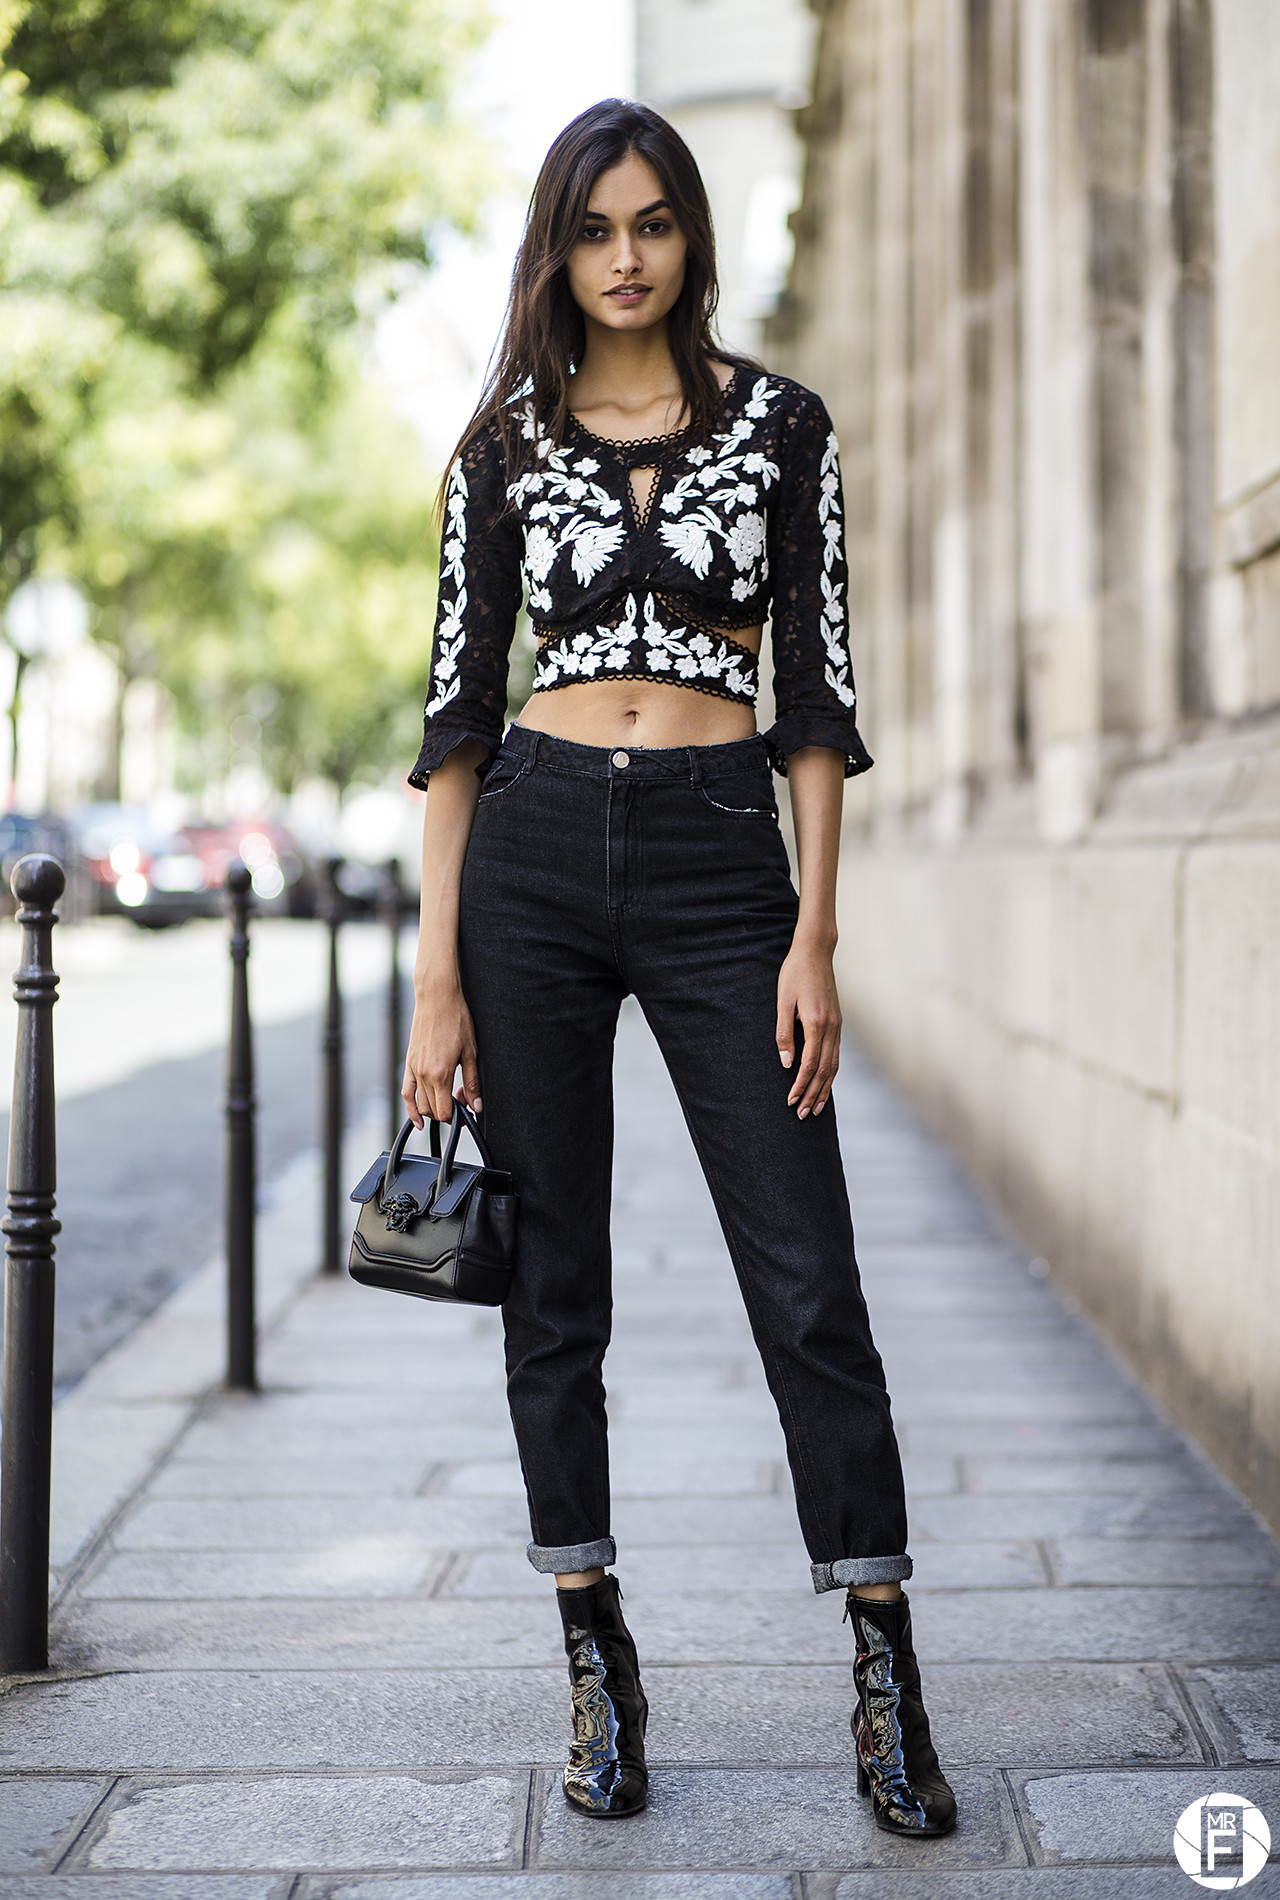 Gizele Oliveira seen in Le Marais, Paris